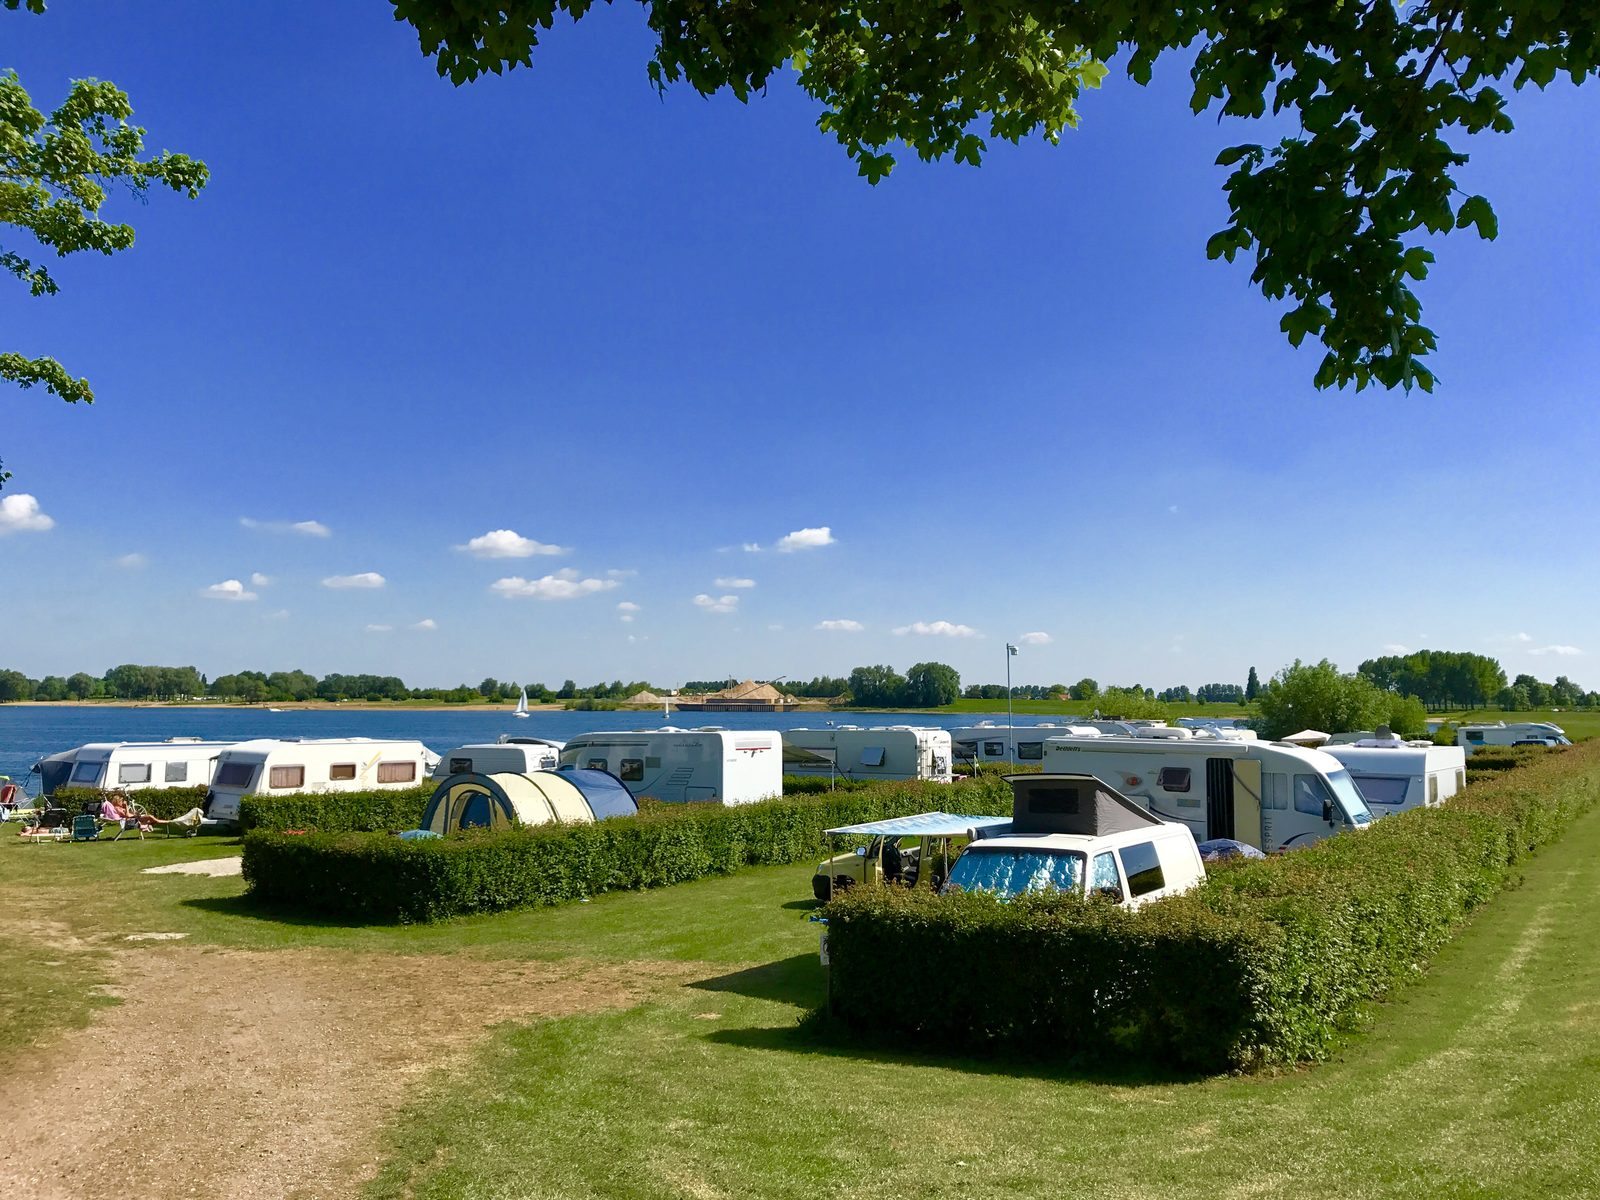 Campsites on the waterside